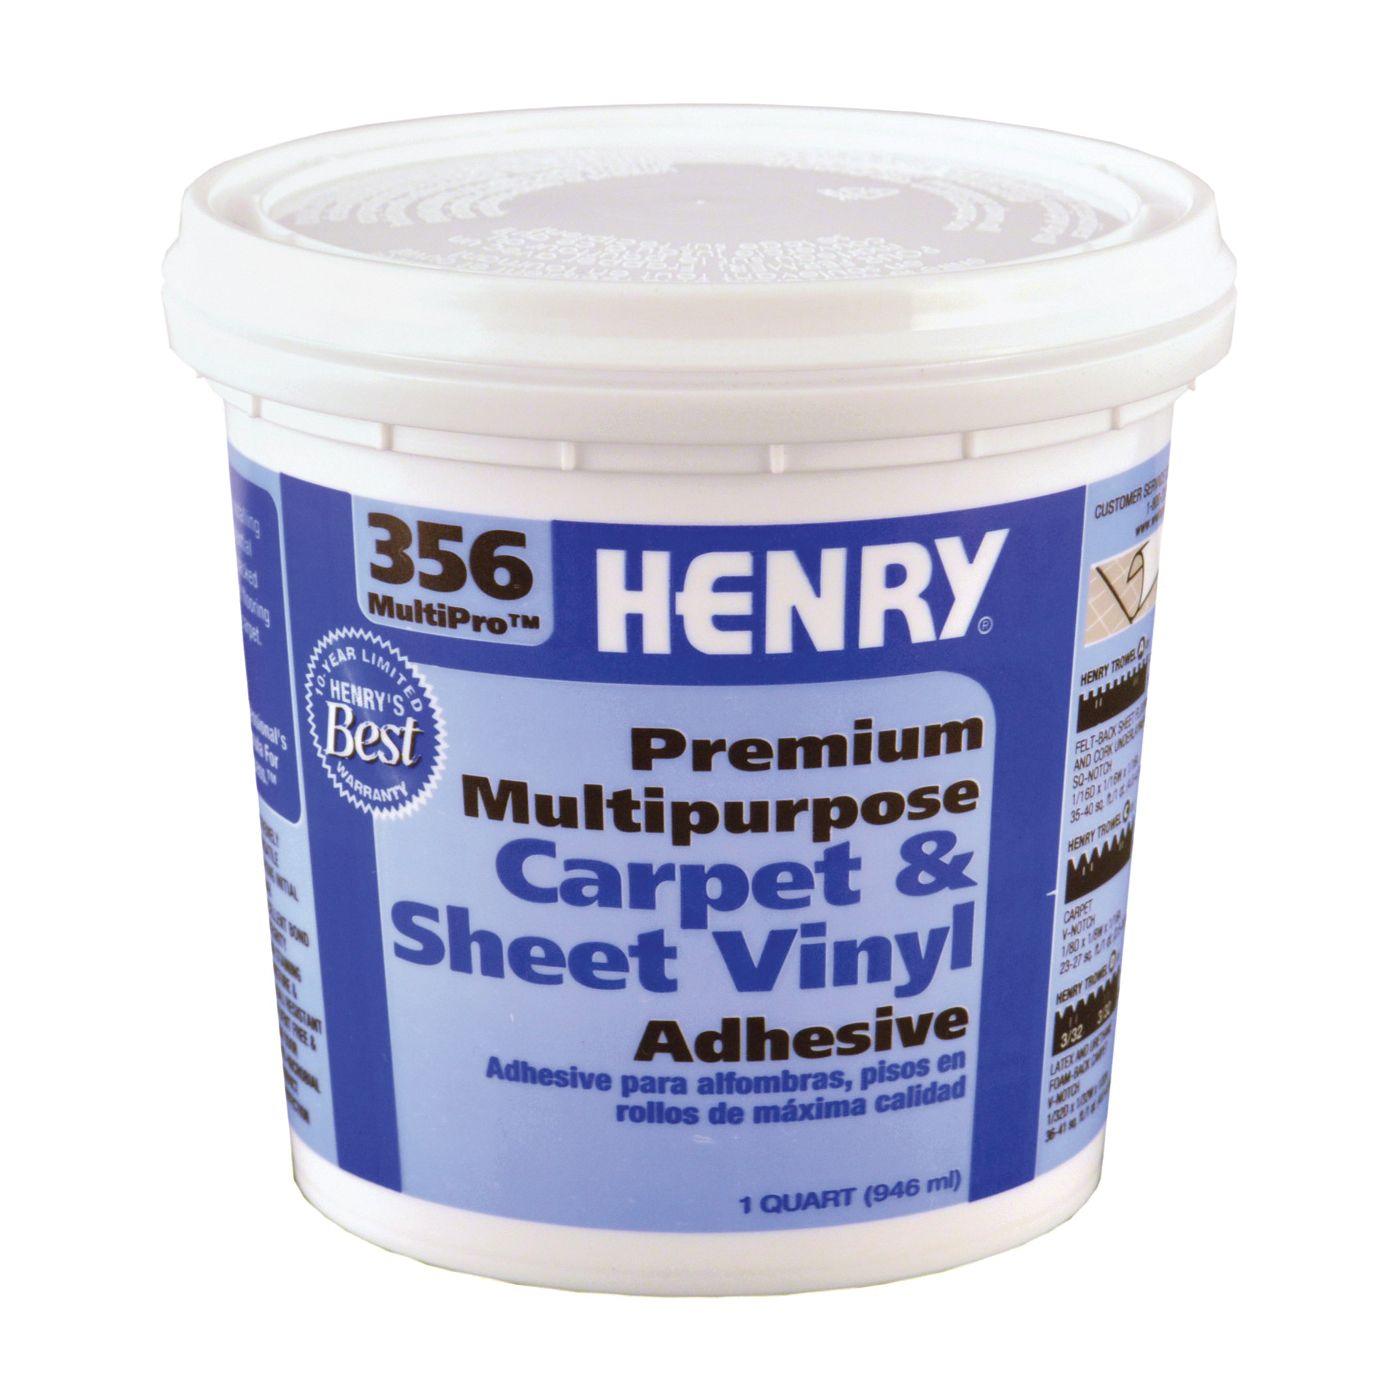 Picture of HENRY 356C MultiPro 356-030 Carpet and Sheet Adhesive, Paste, Mild, Pale Yellow, 1 qt Package, Pail